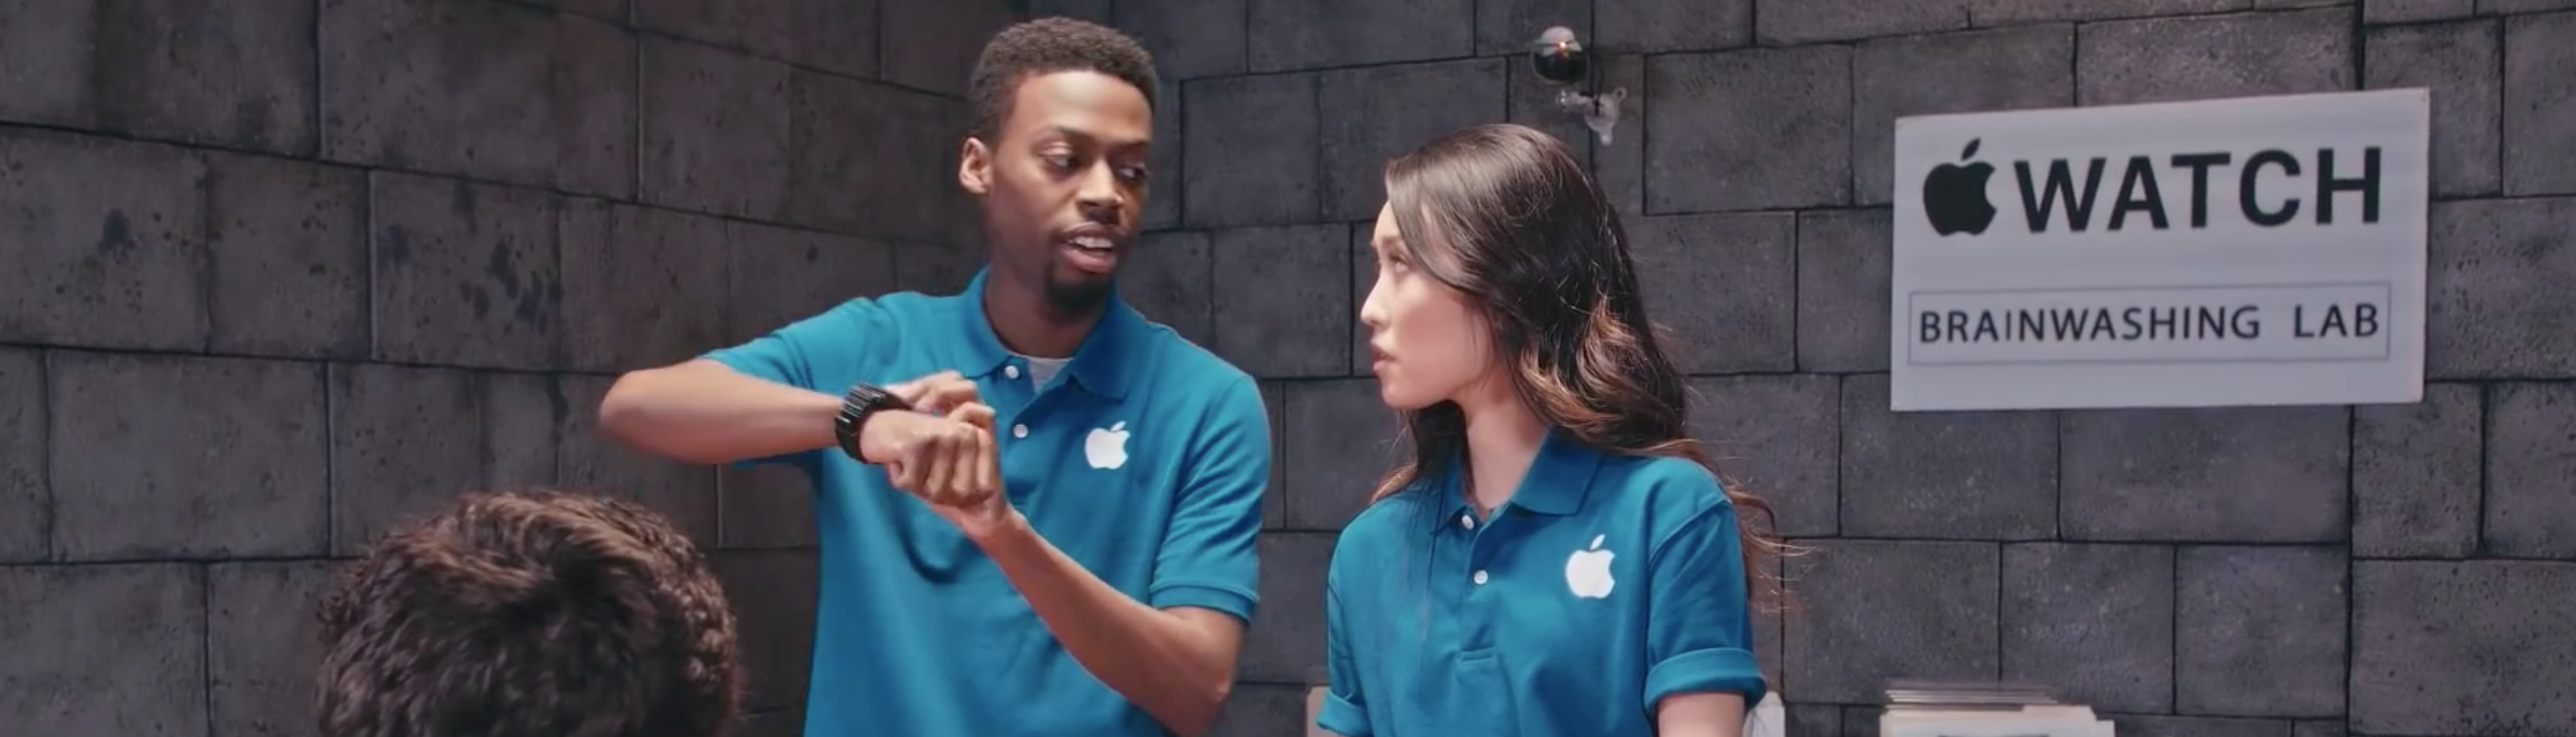 Apple Watch - Brainwashing Lab